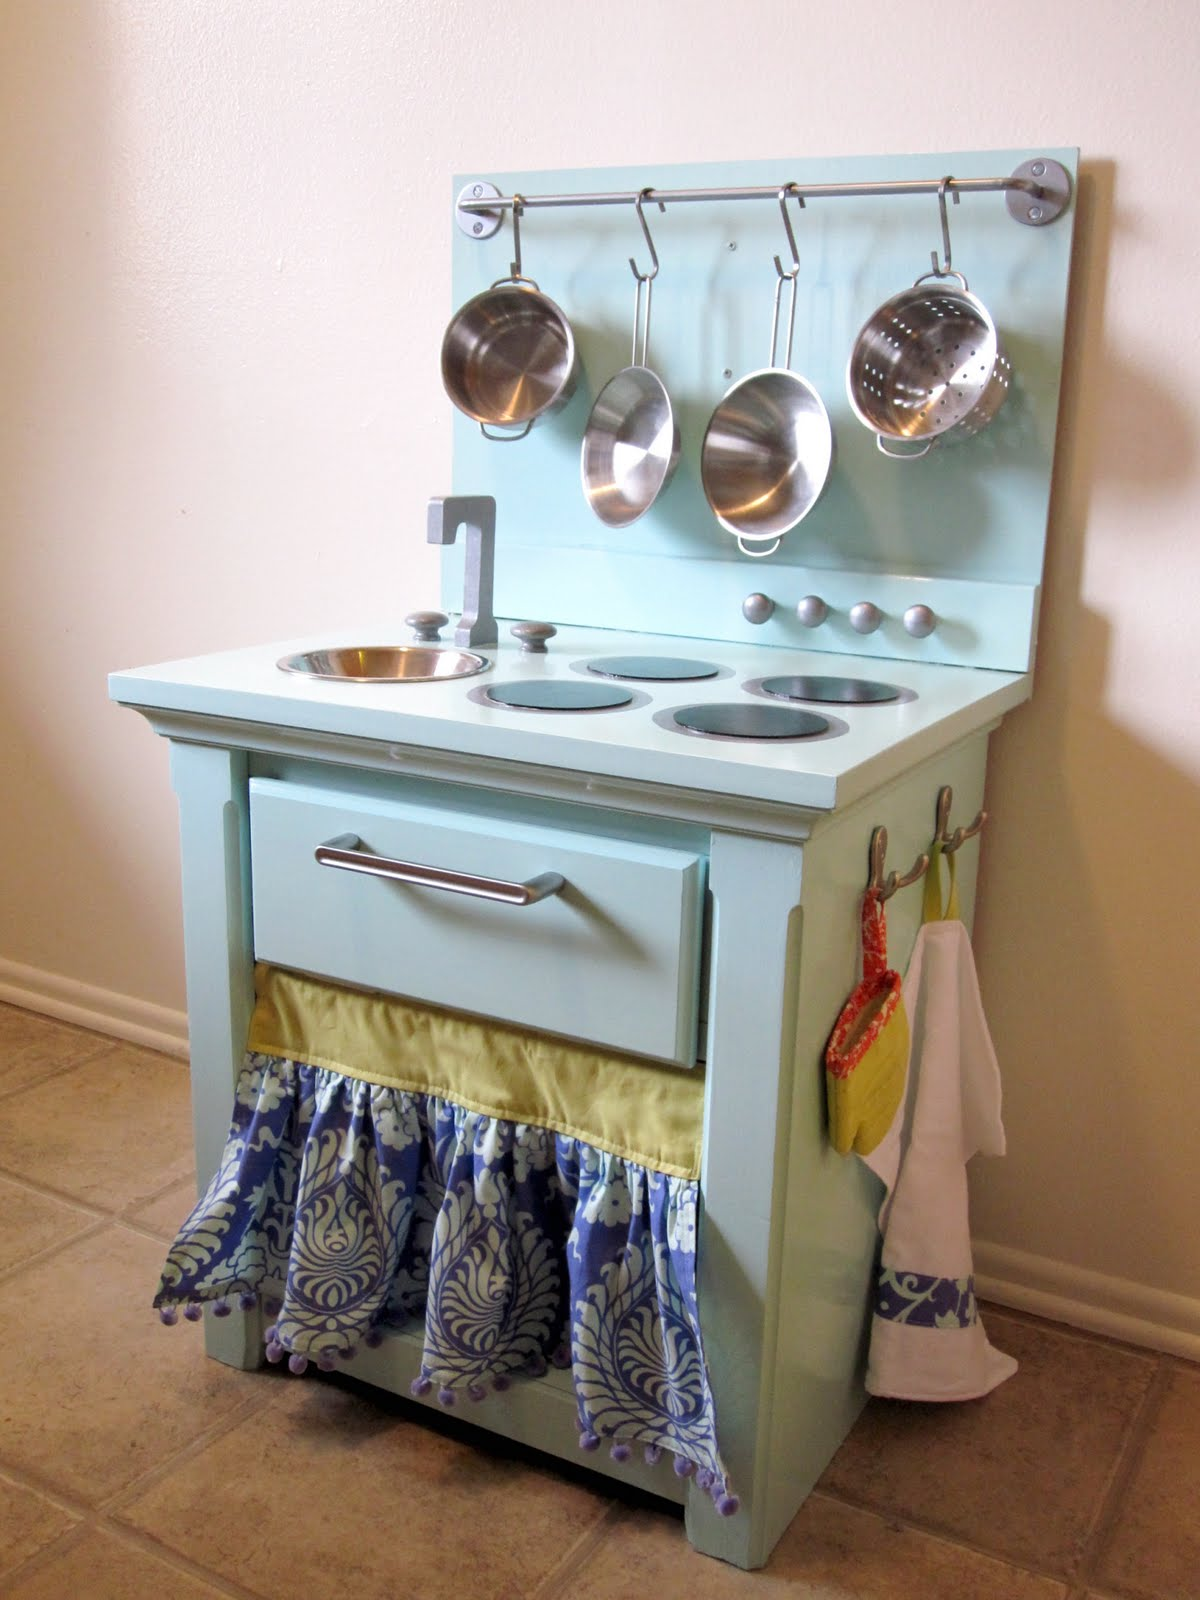 The Hawkins Family Play Kitchen